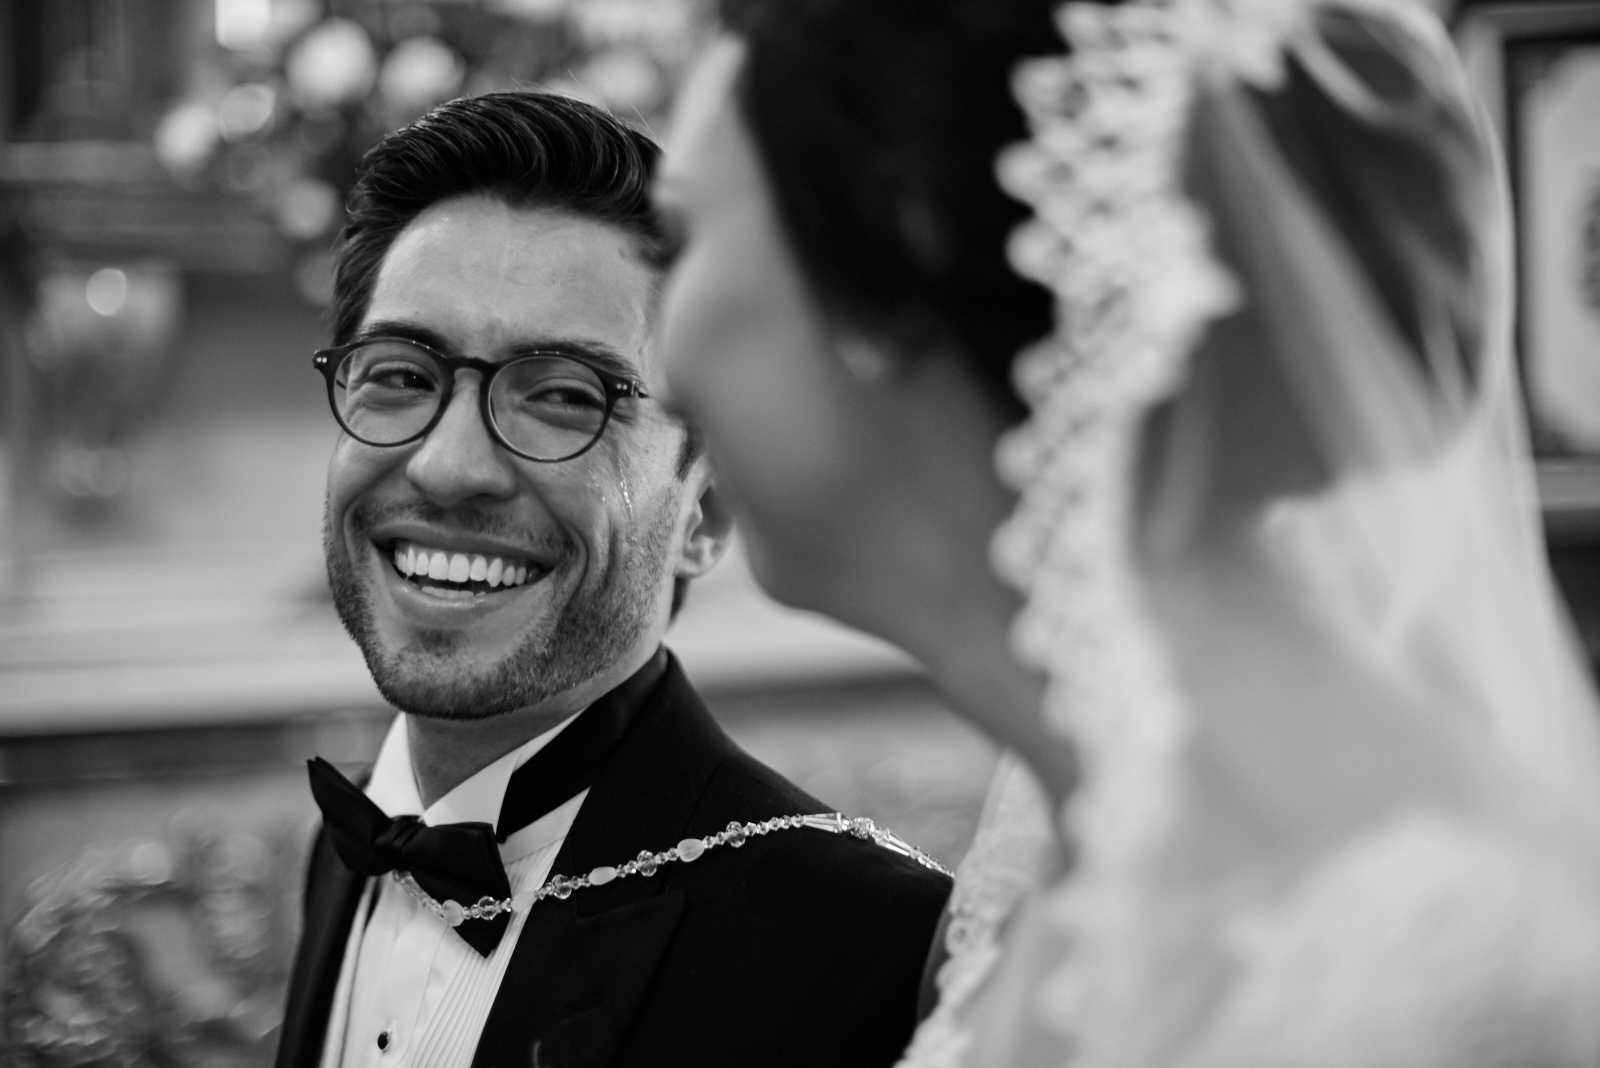 Wedding photographer in San Sebastian del Oeste, Jalisco, Mexico